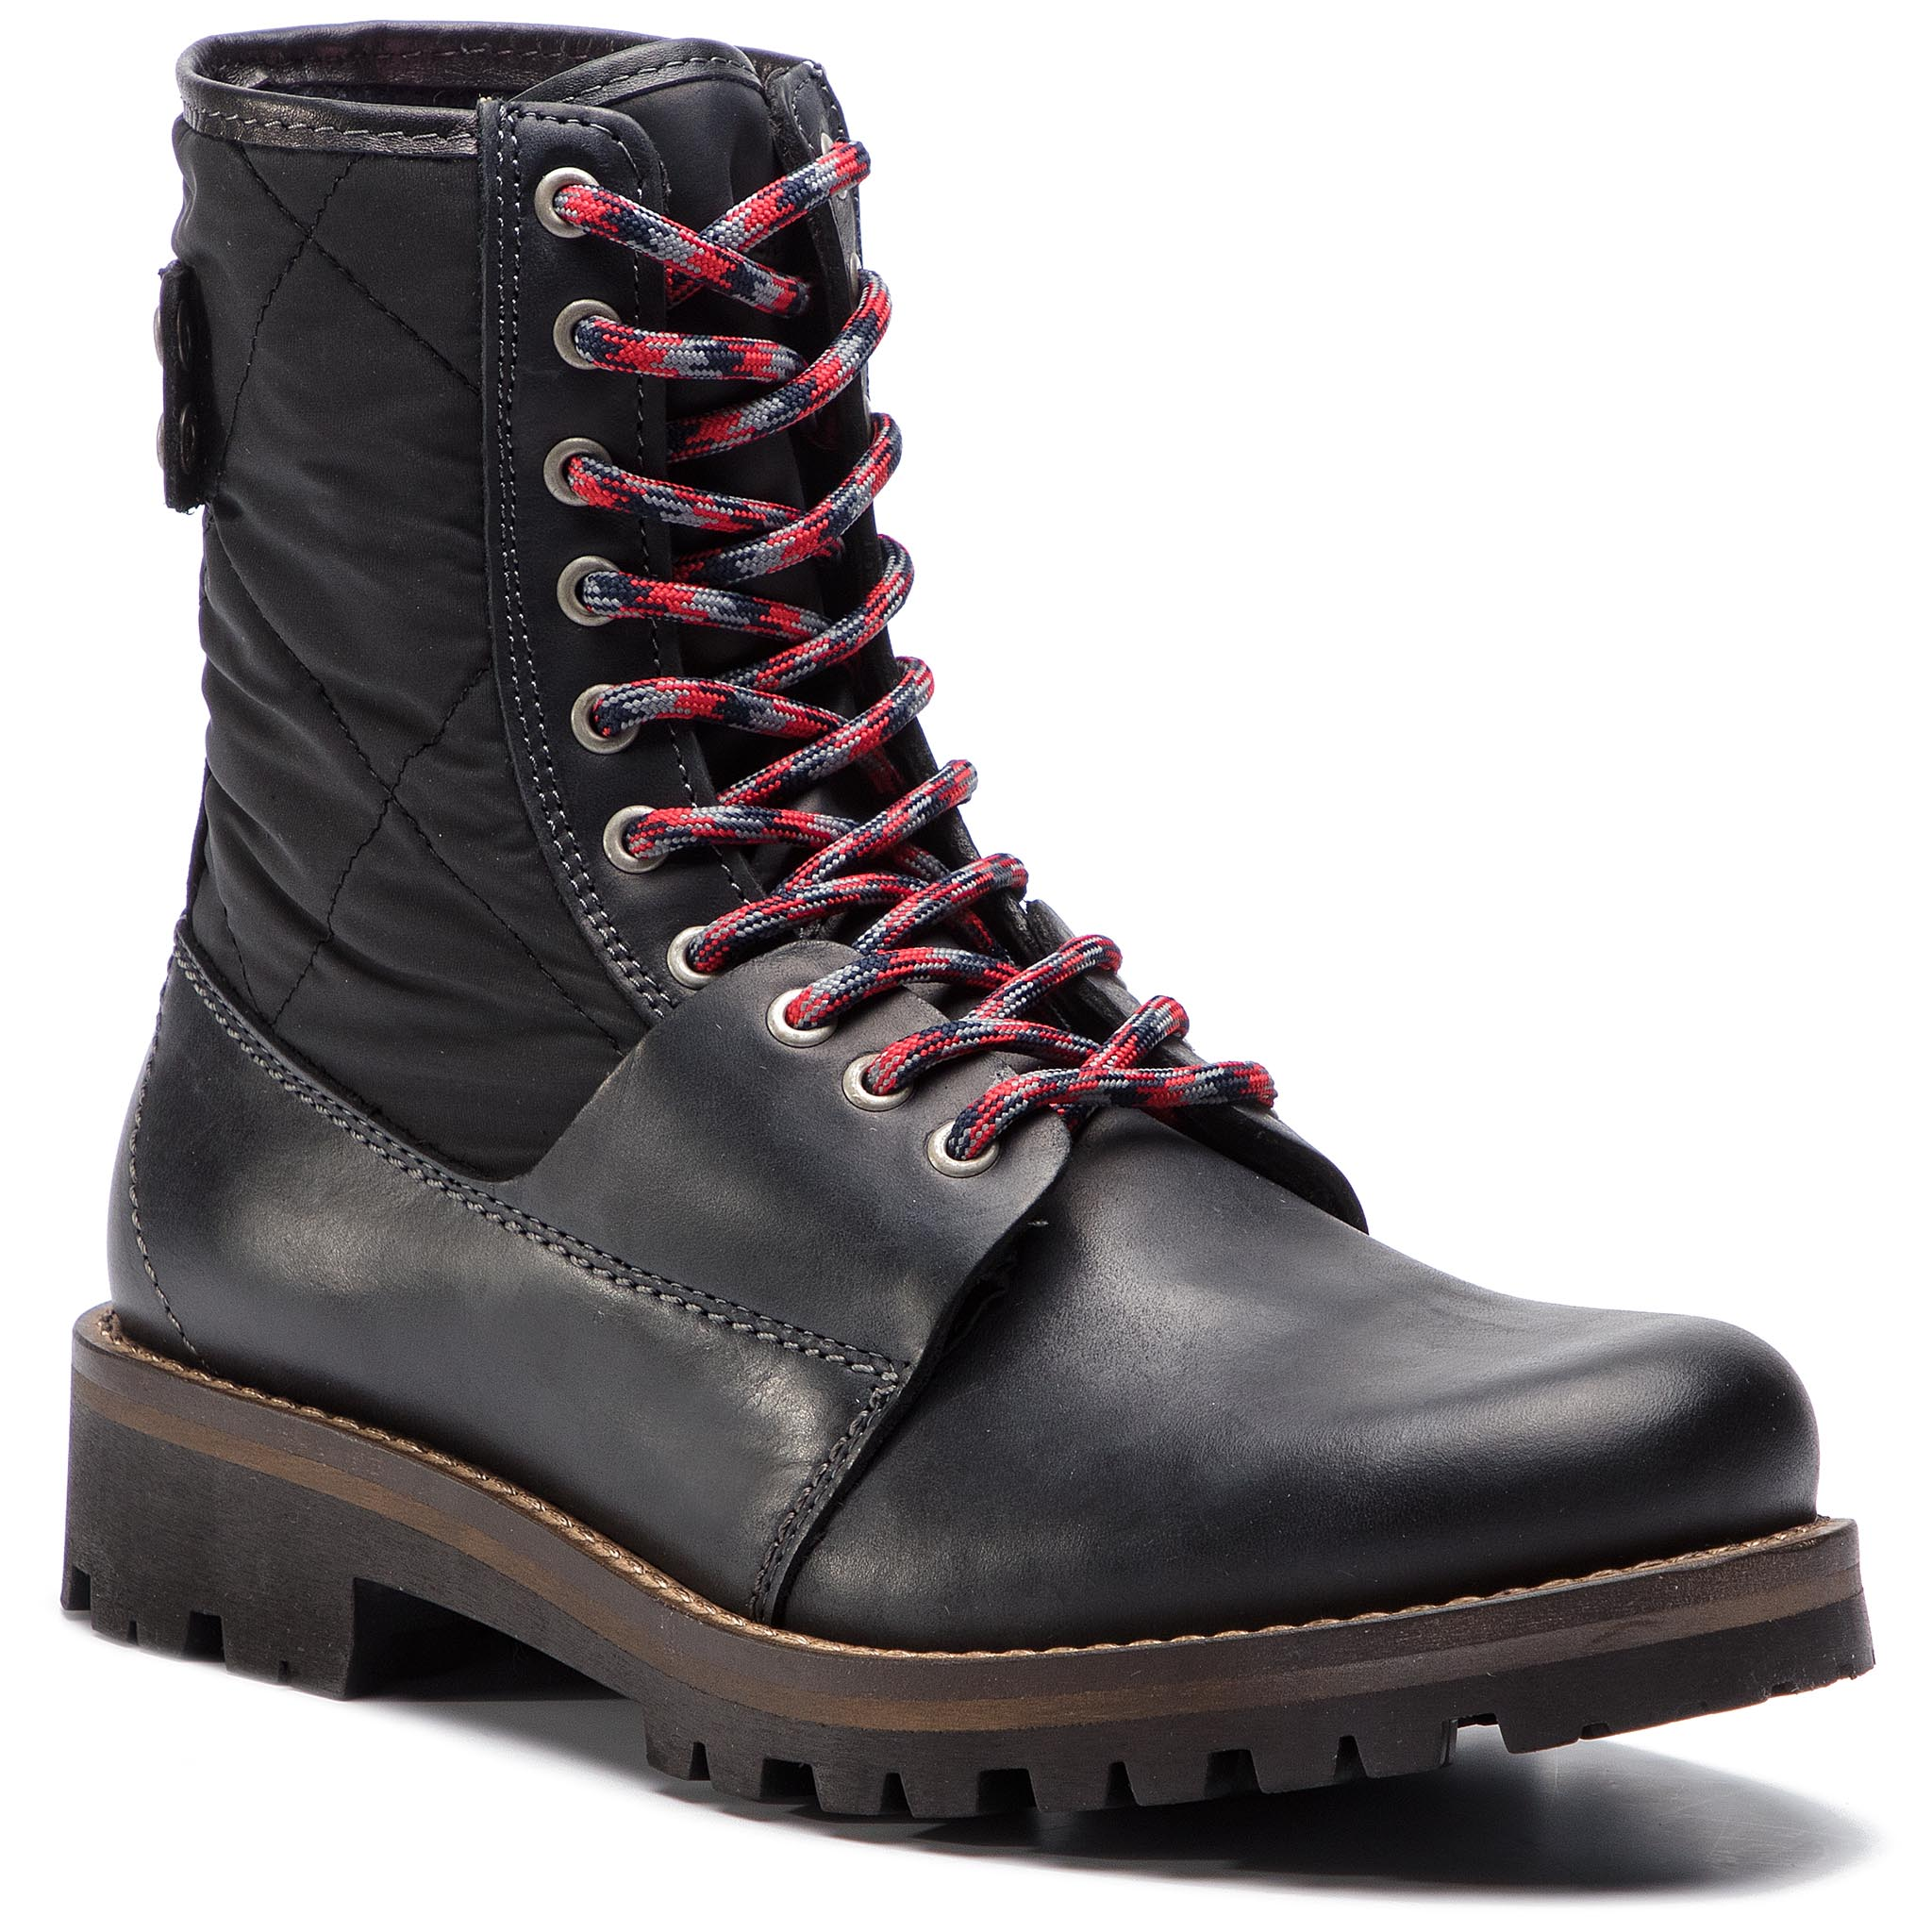 Trappers TOMMY HILFIGER - High Material Mix Winter Boot FM0FM02017 Black 990